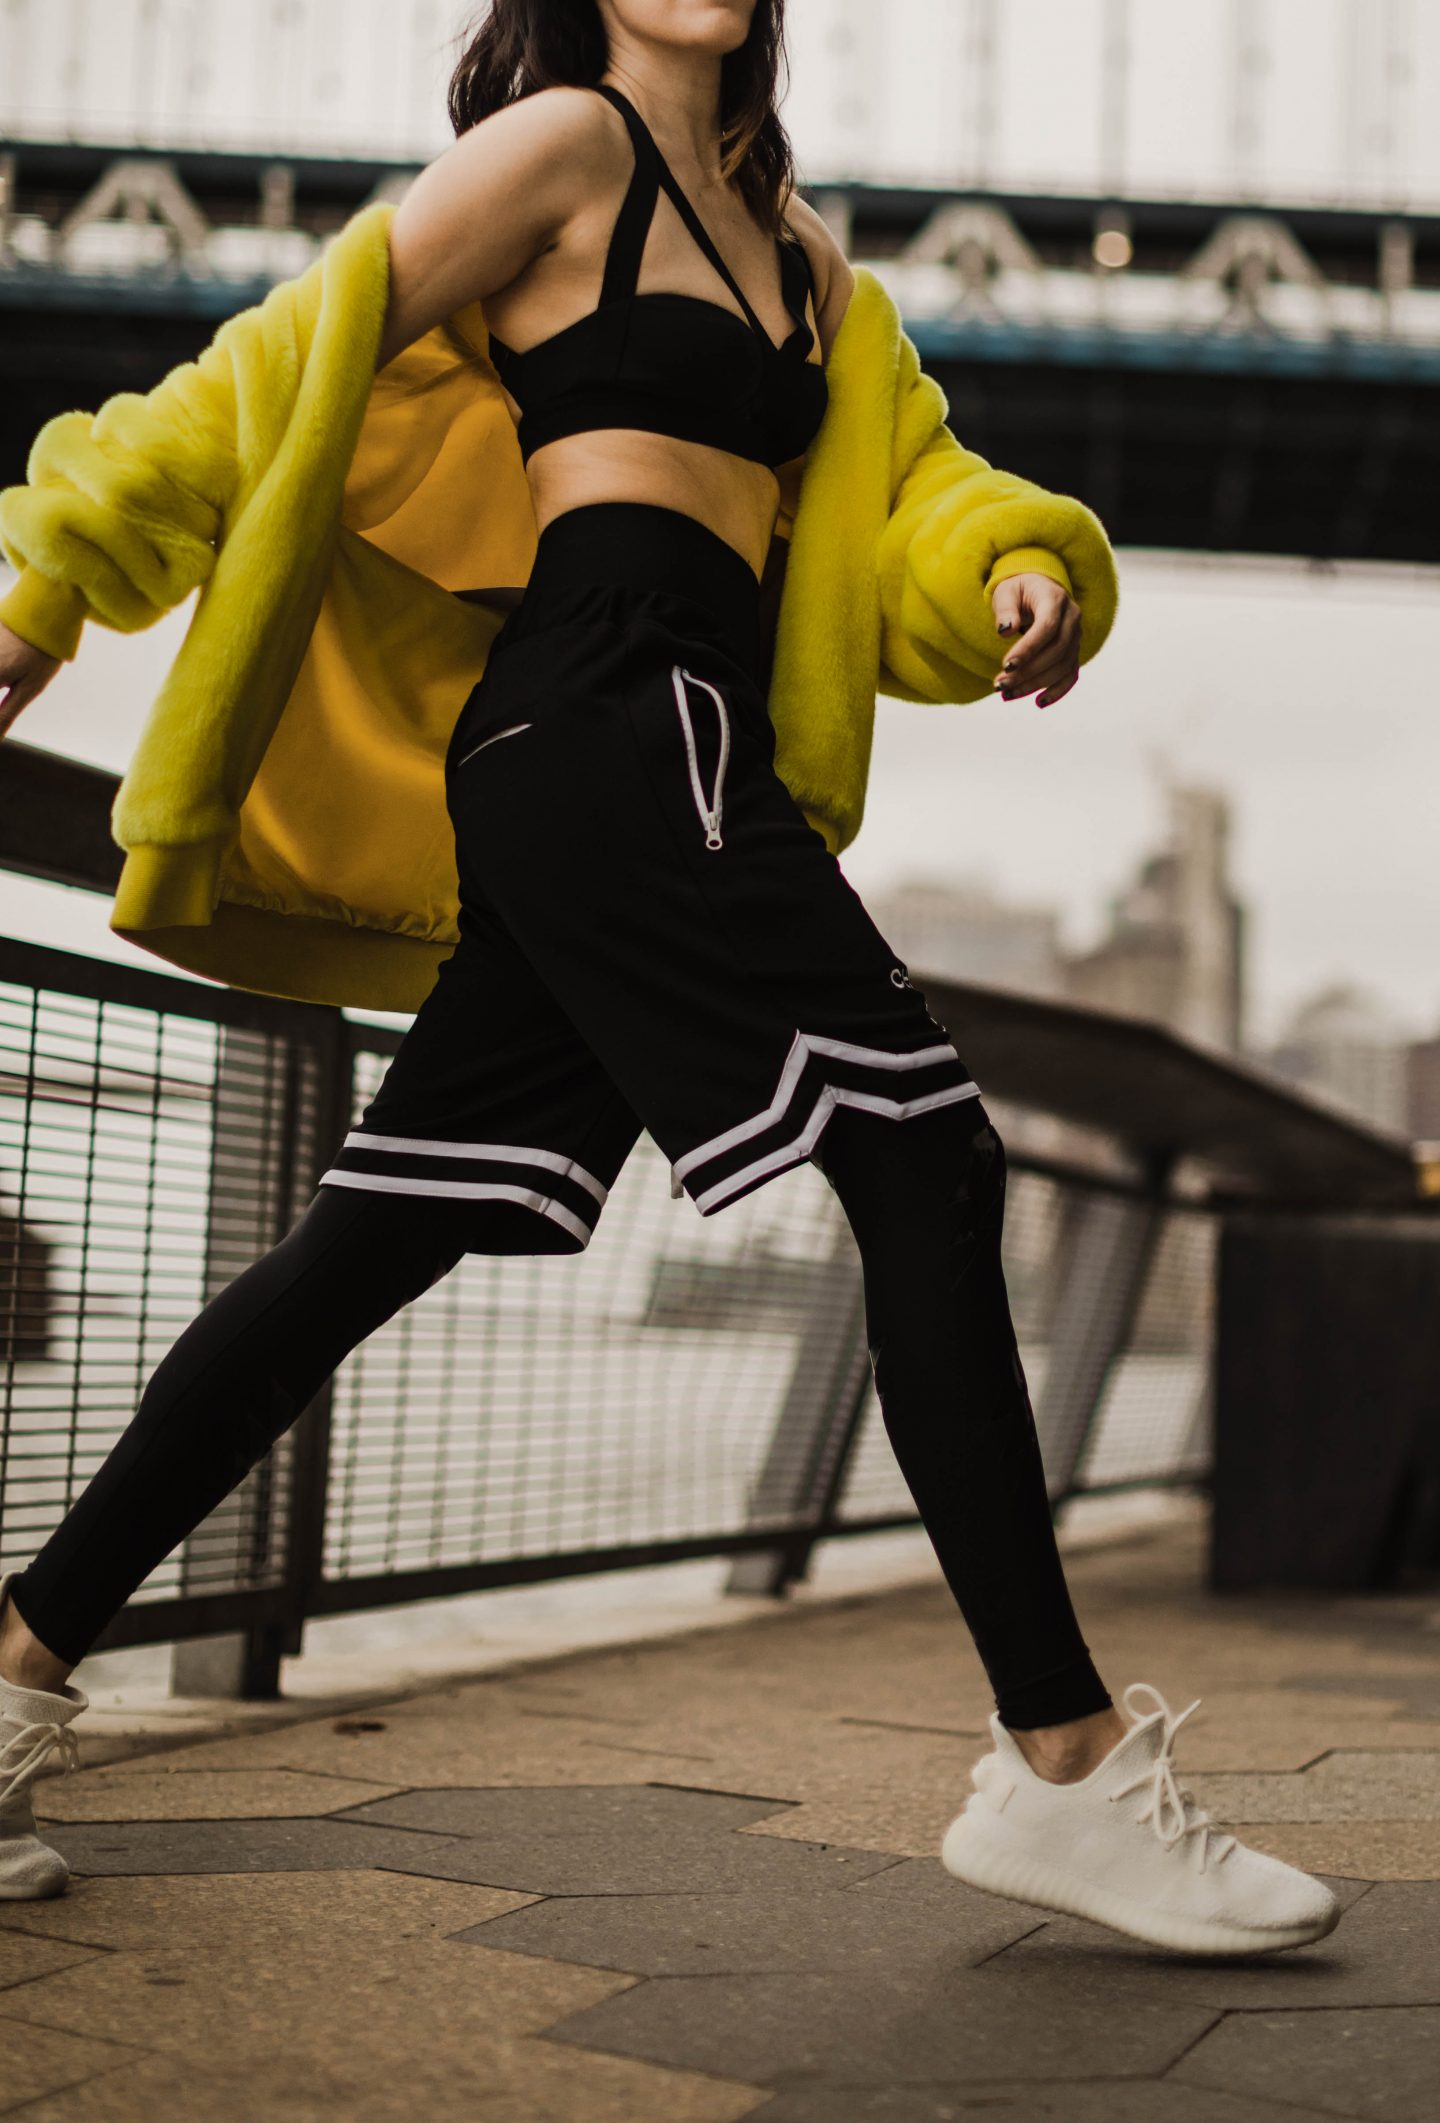 Tibi Luxe Faux Fur Track Jacket Rent The Runway x Ultracor Bolt Silk Legging x Carbon38 x Yeezy Ultra Boost 350